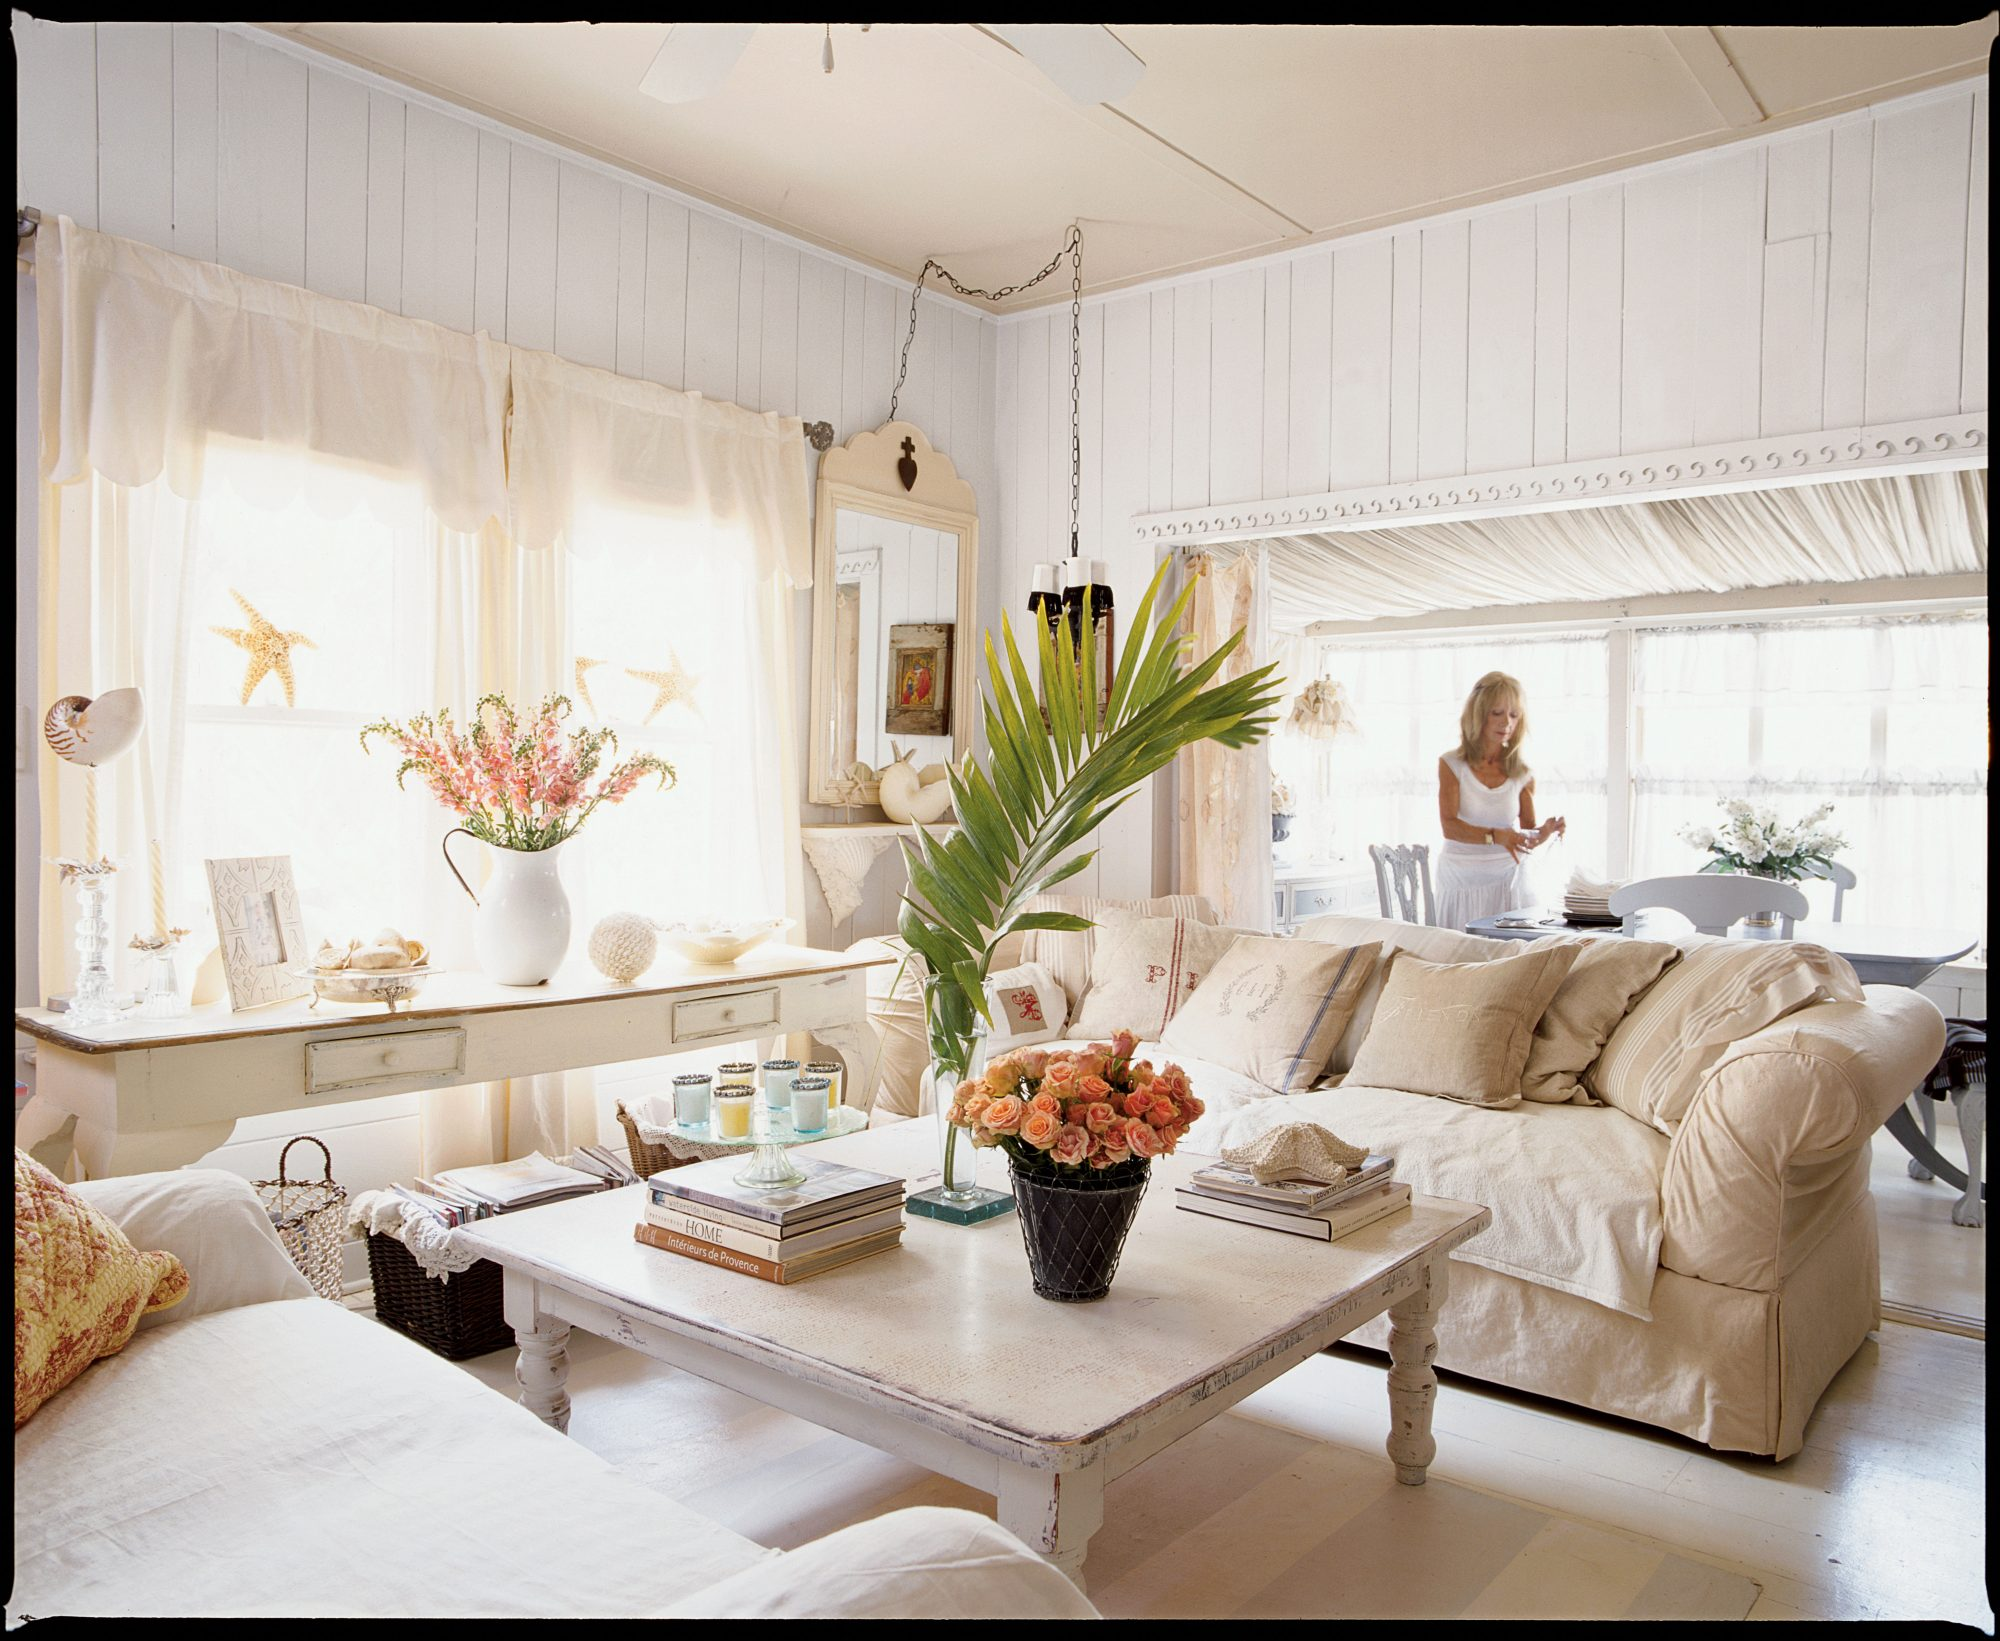 Lacy curtains, fresh florals, and plenty of monogrammed pillows are just a few of the feminine touches that give this room its calming and sweet mood. Pieces scored at thrift stores and flea markets were refreshed with paint, then artfully applied to achieve the shabby-chic distressed look.